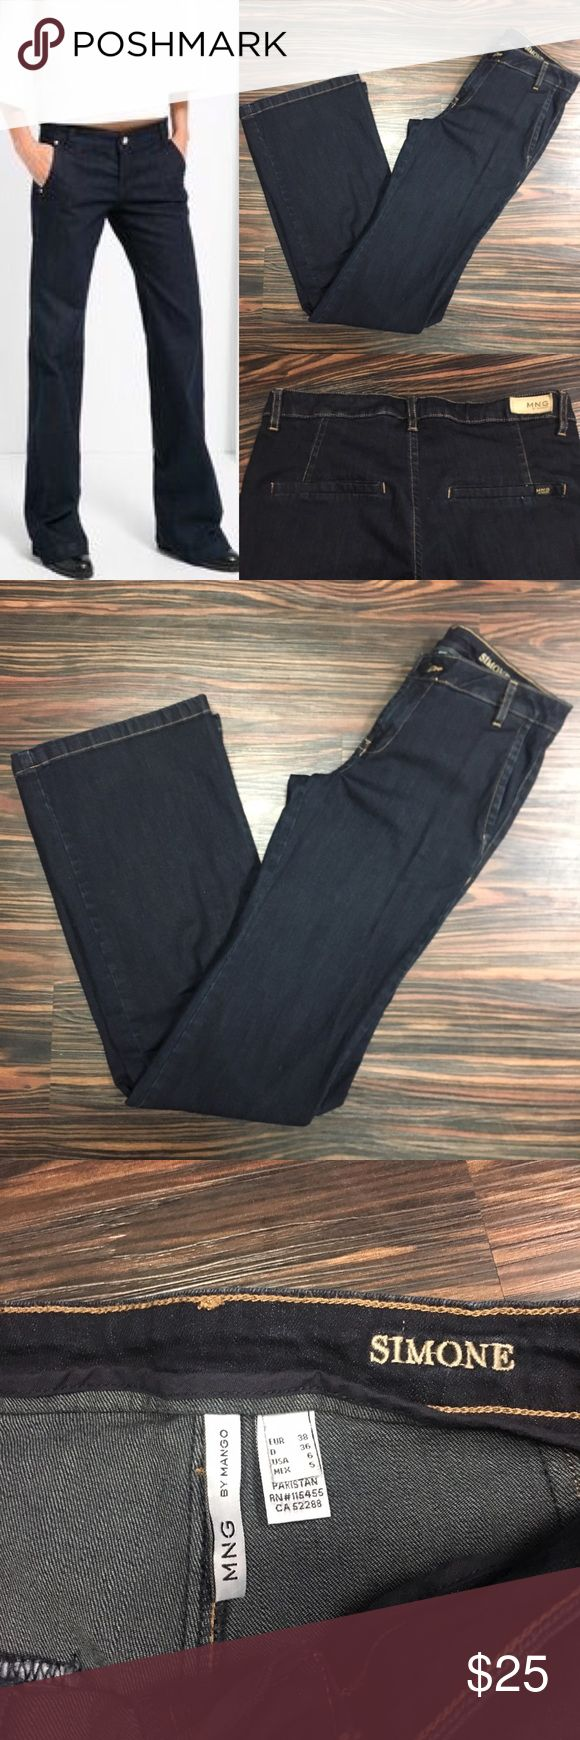 (Make an offer)MNG by Mango trouser jeans Trouser jean, dark wash with camel stitching. Great to wear with heels, elongates the leg. Size 6 Mango Jeans